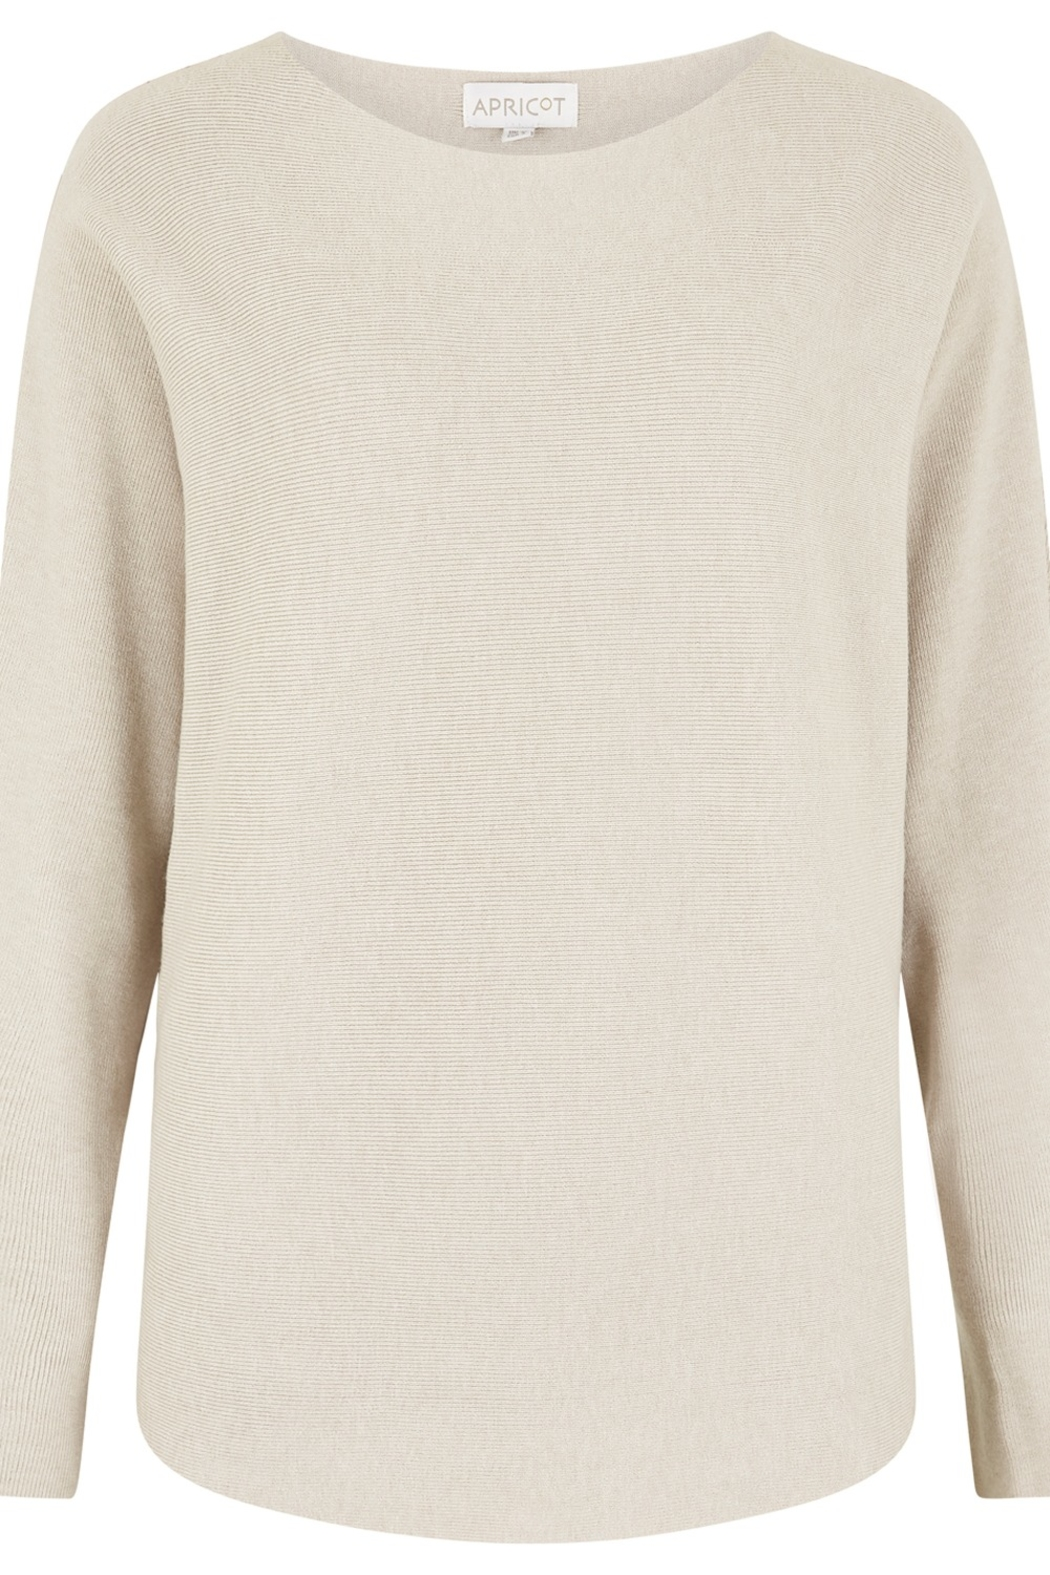 Apricot Clean Look Batwing Sweater Top - Front Cropped Image